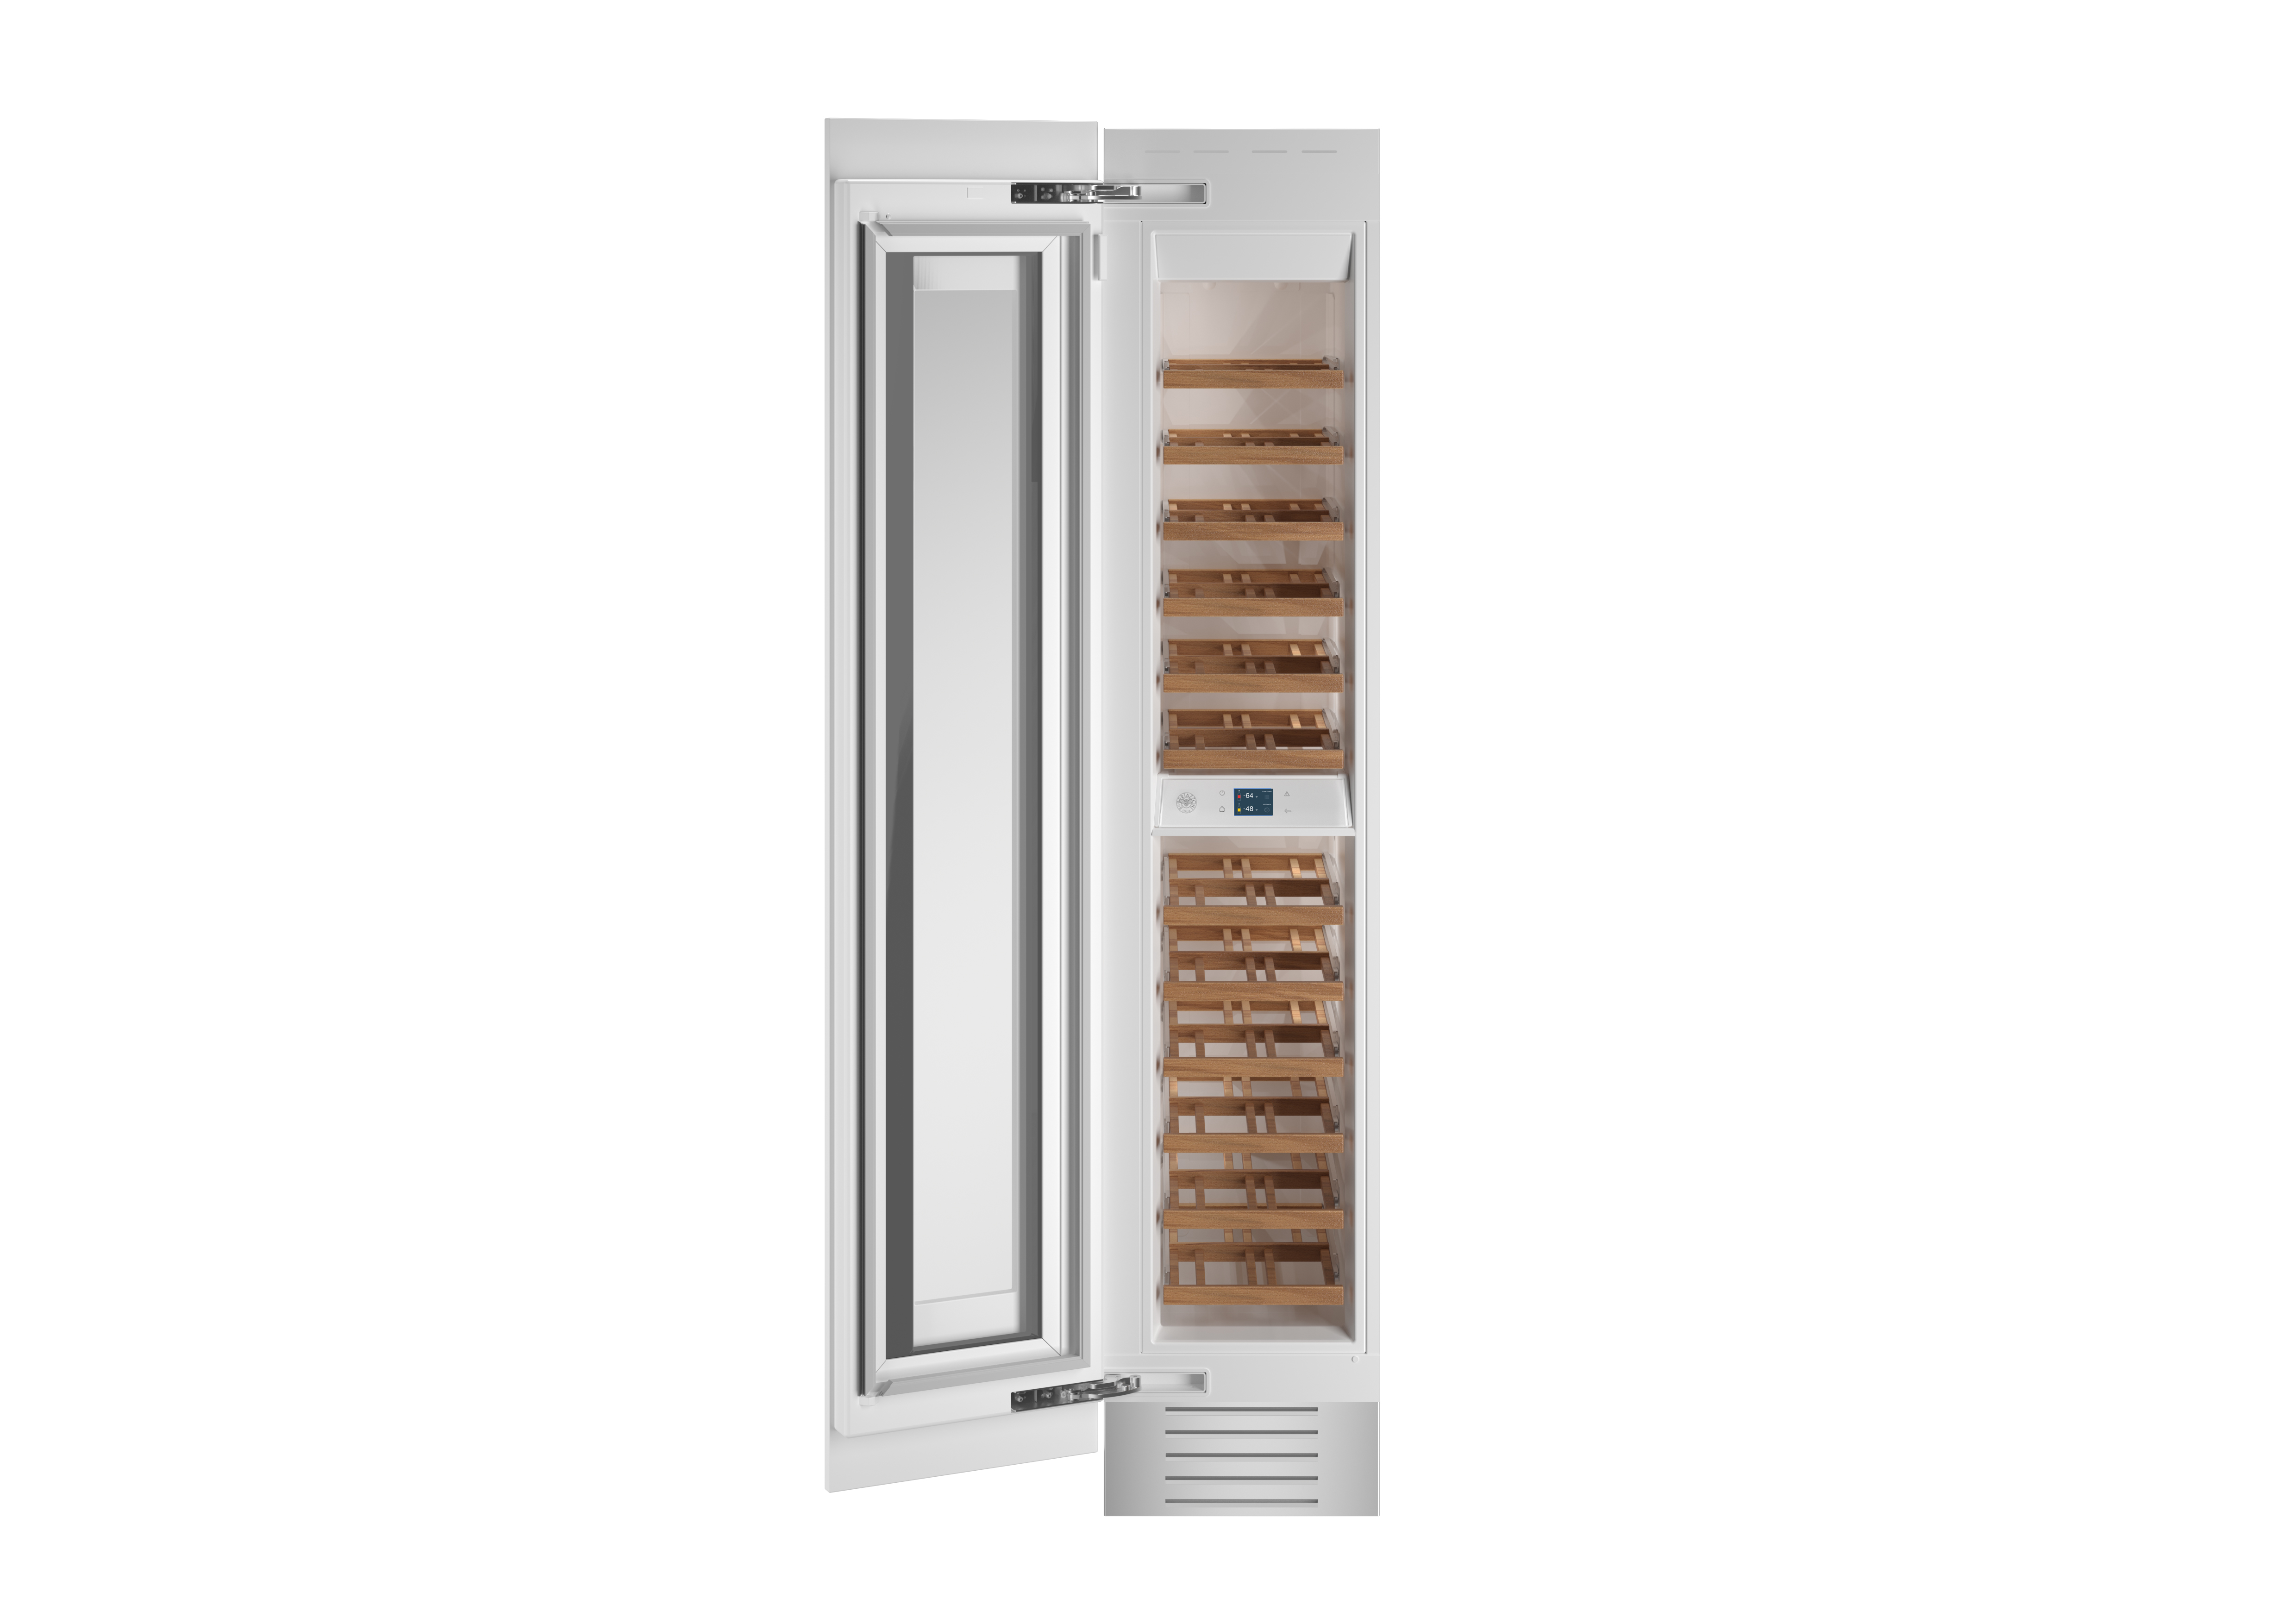 Bertazzoni Cellar REF18WCPRL in Stainless Steel color showcased by Corbeil Electro Store